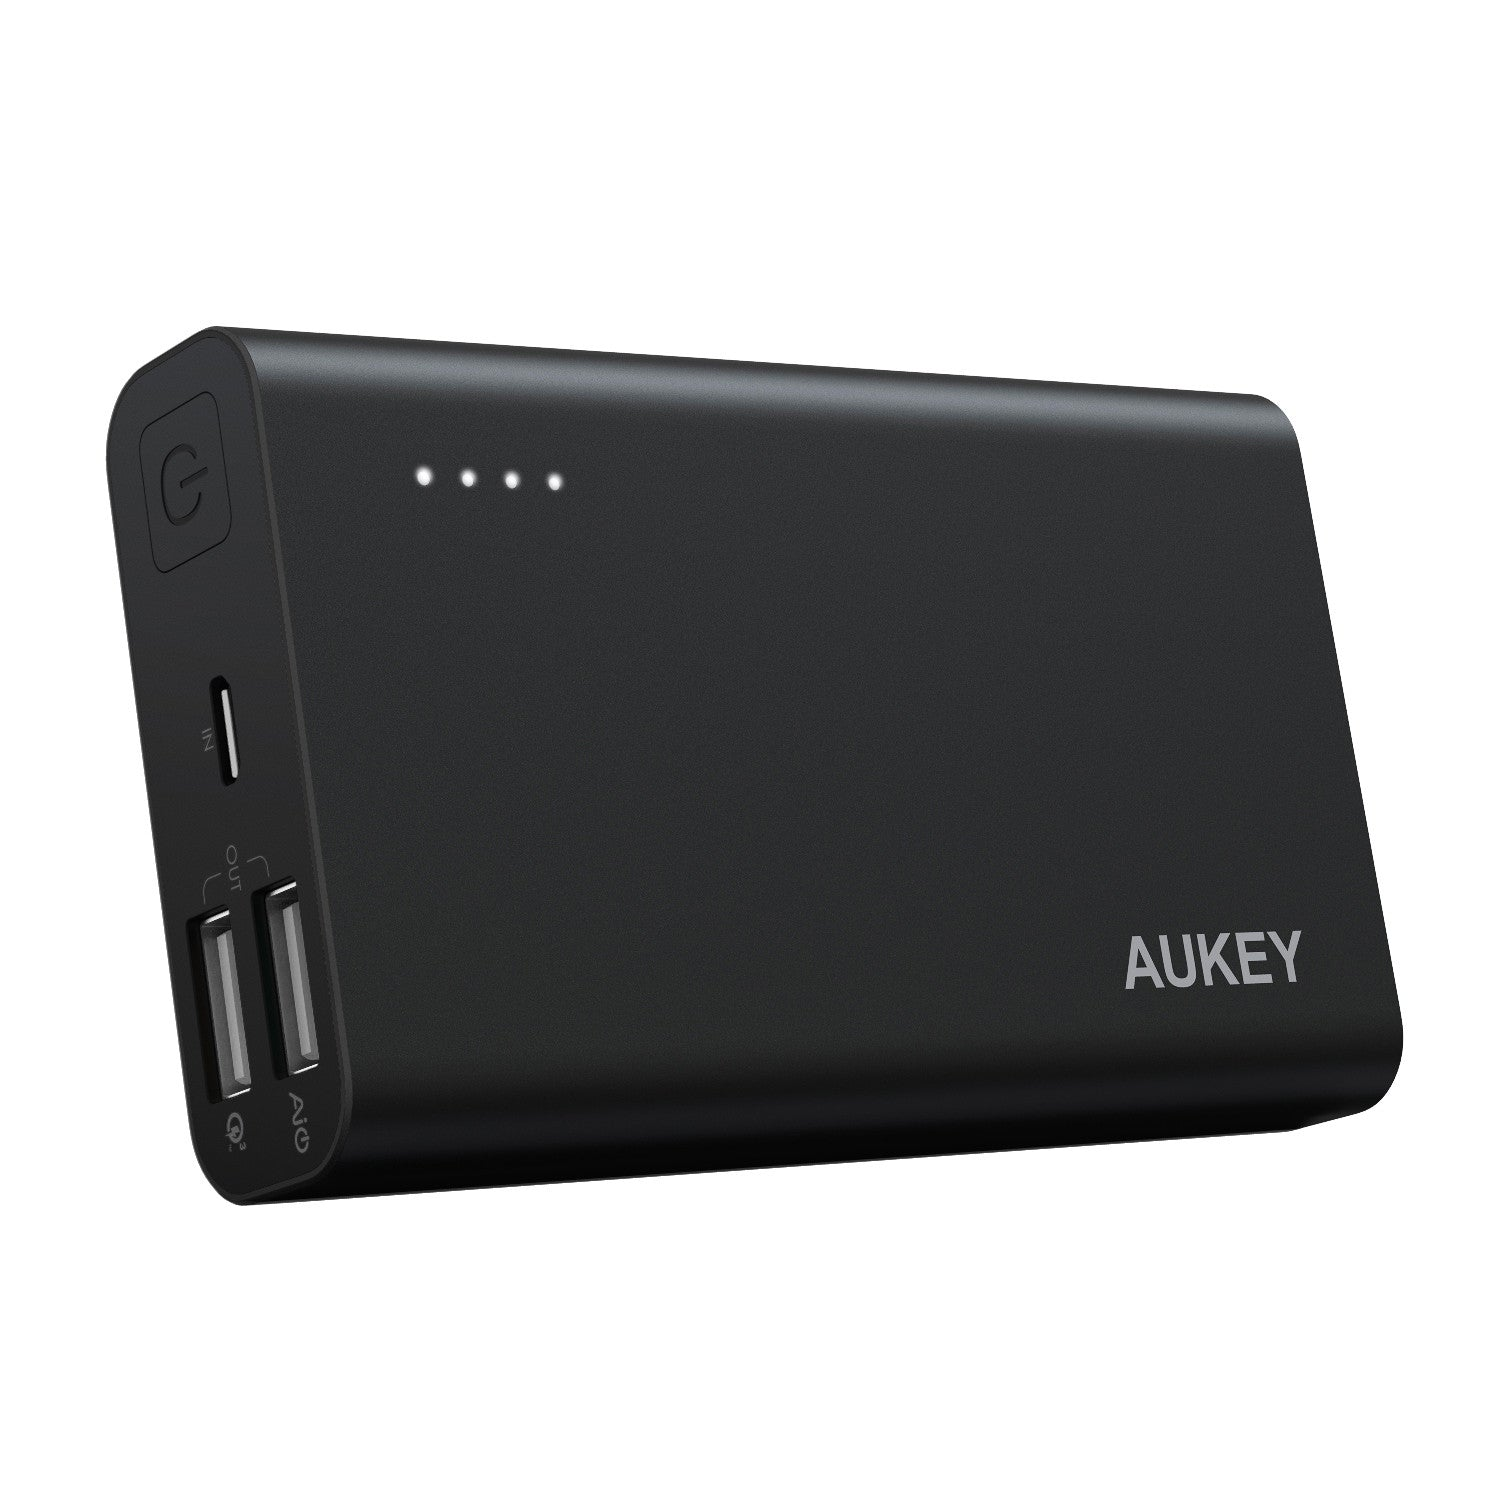 AUKEY PB-AT10 10000mAh Premium Qualcomm Quick Charge 3.0 Power Bank - Aukey Malaysia Official Store